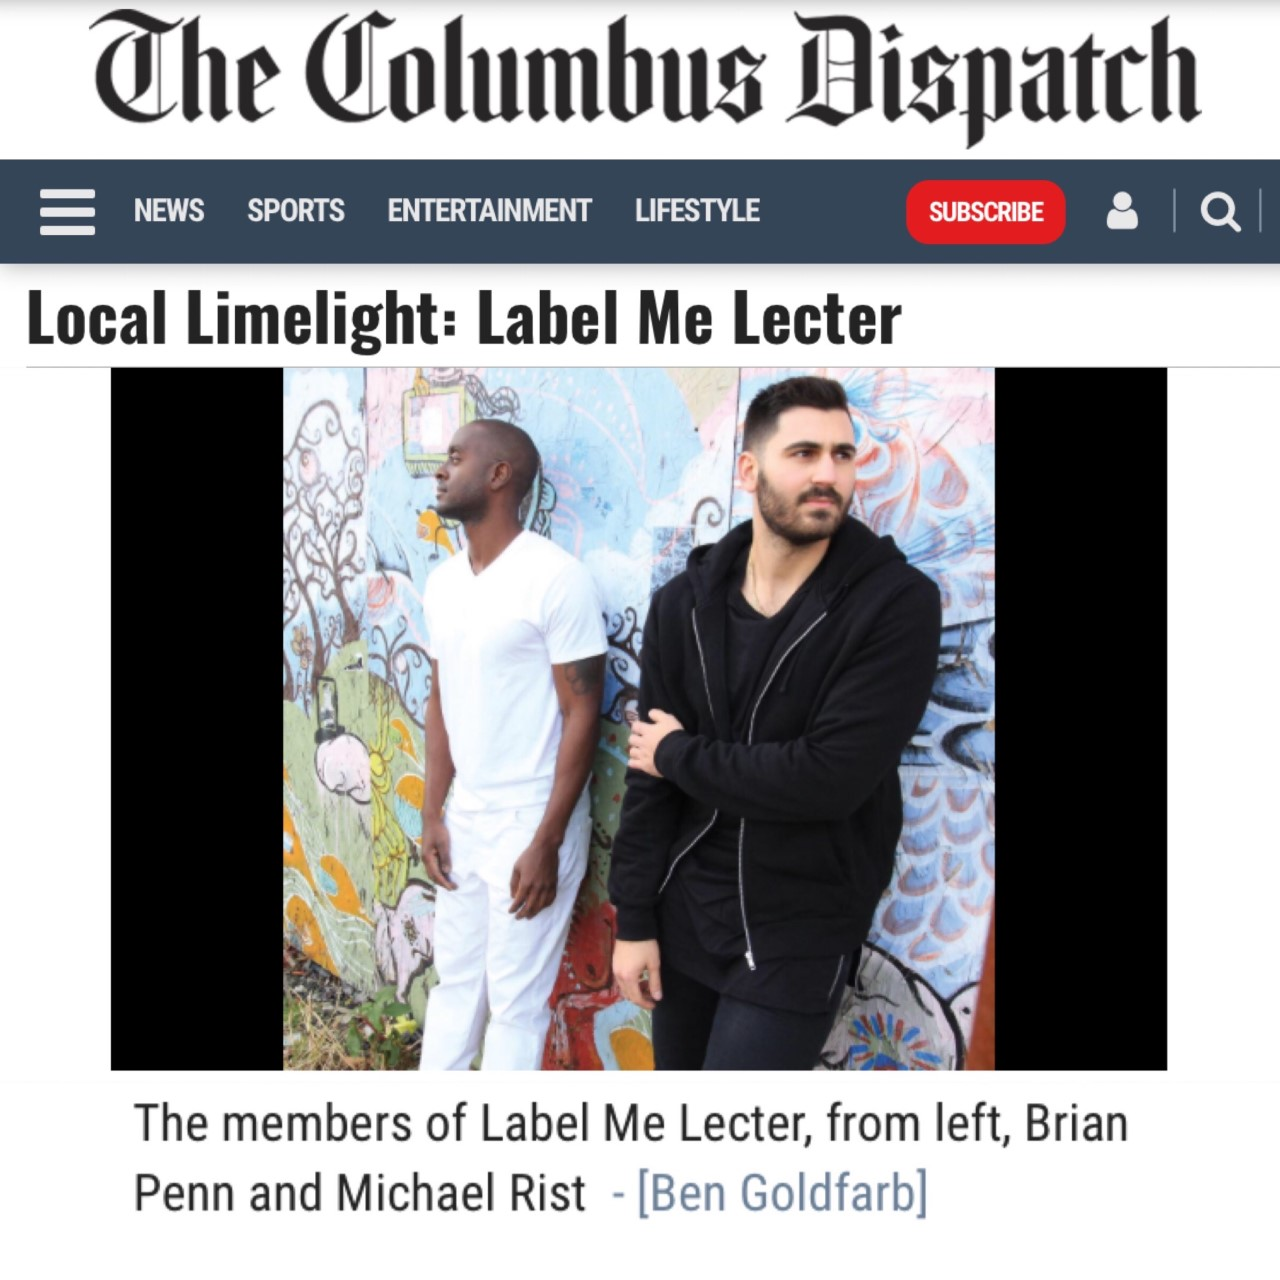 special thanks to   julia oller   and the   columbus dispatch   for featuring us in the local limelight section. we appreciate it greatly. check out the article   HERE